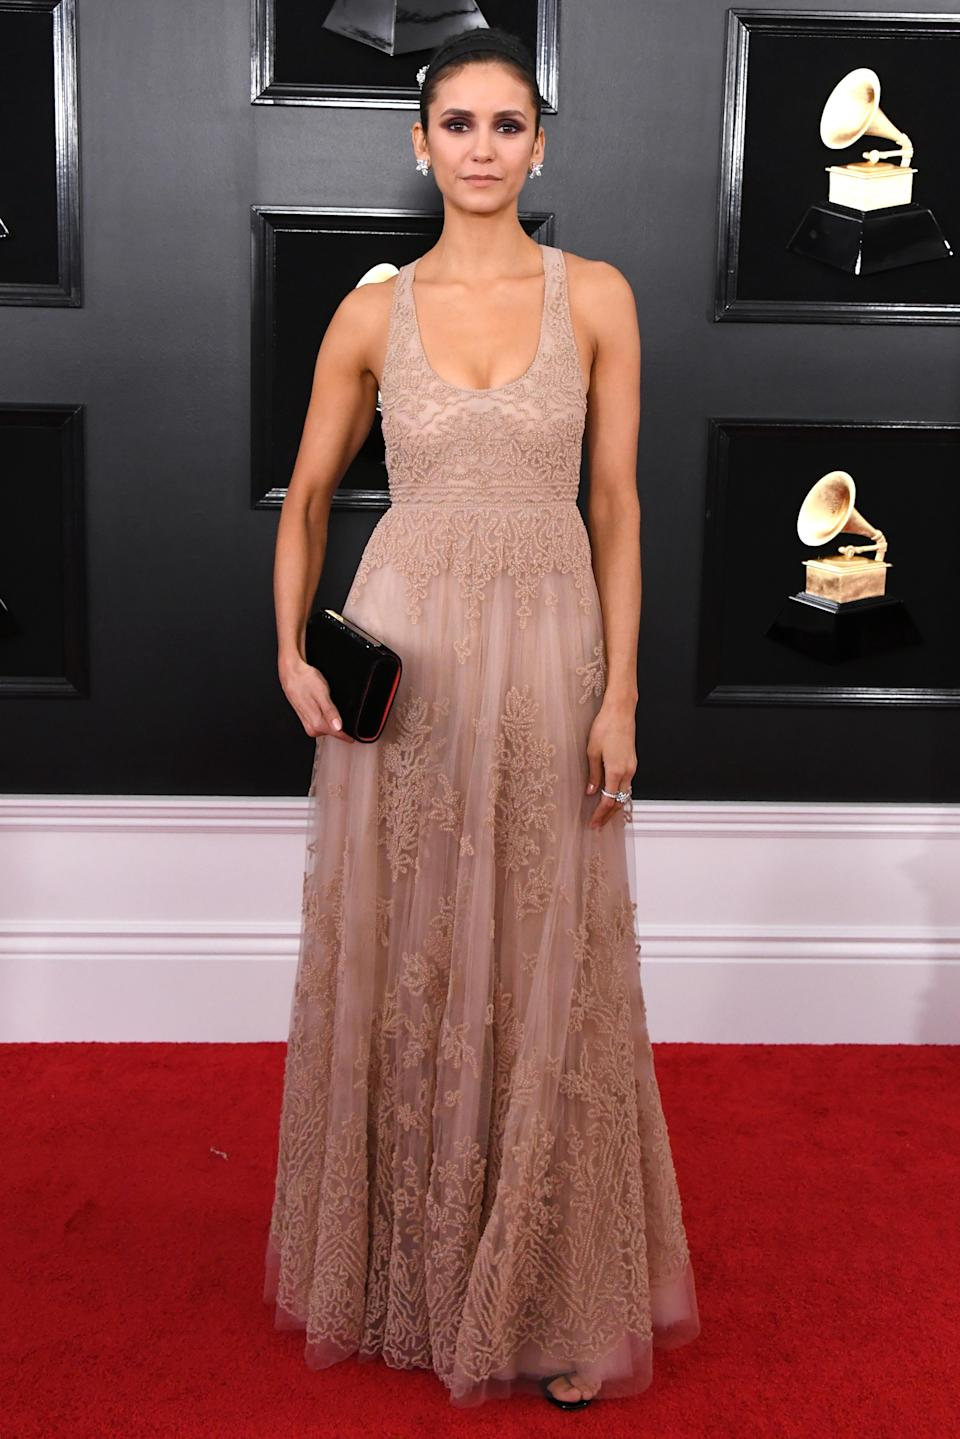 Nina Dobrev at the 2019 Grammy Awards. Image via Getty Images.